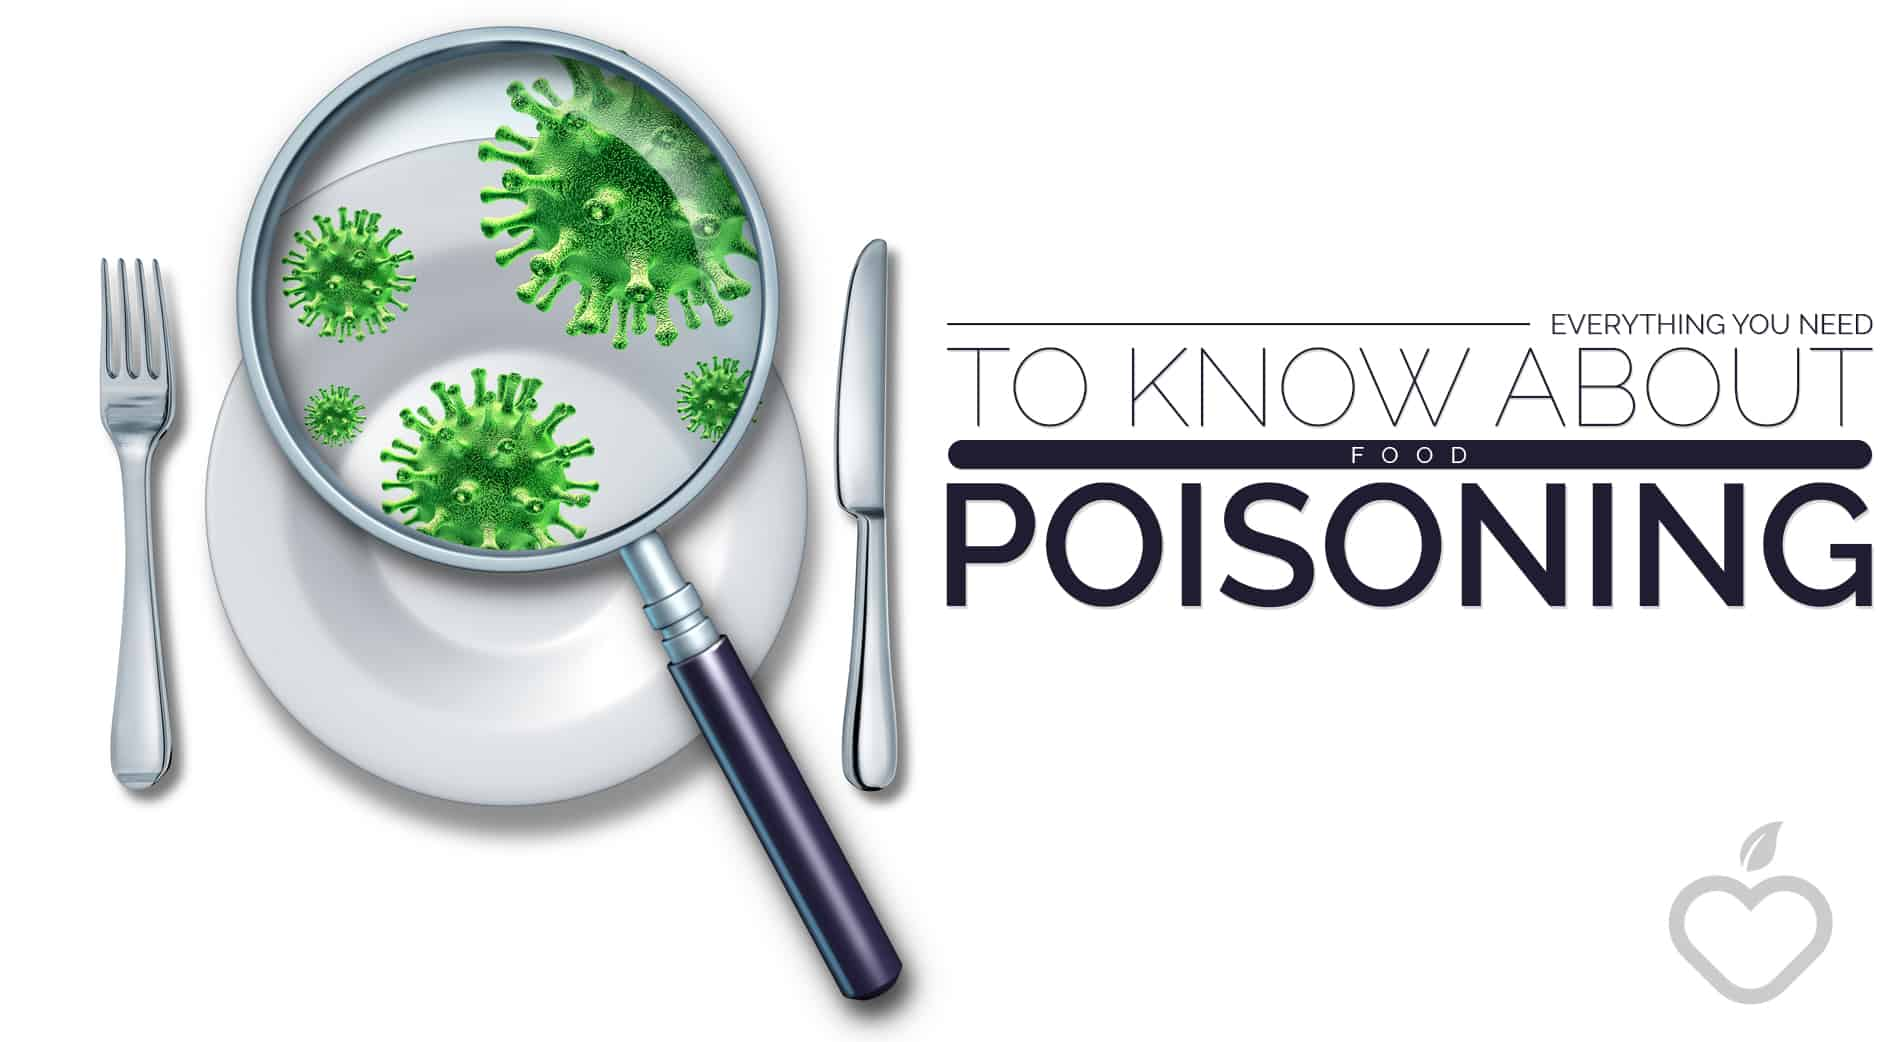 Food Poisoning Image Design 1 - All the things You Have to Know About Meals Poisoning